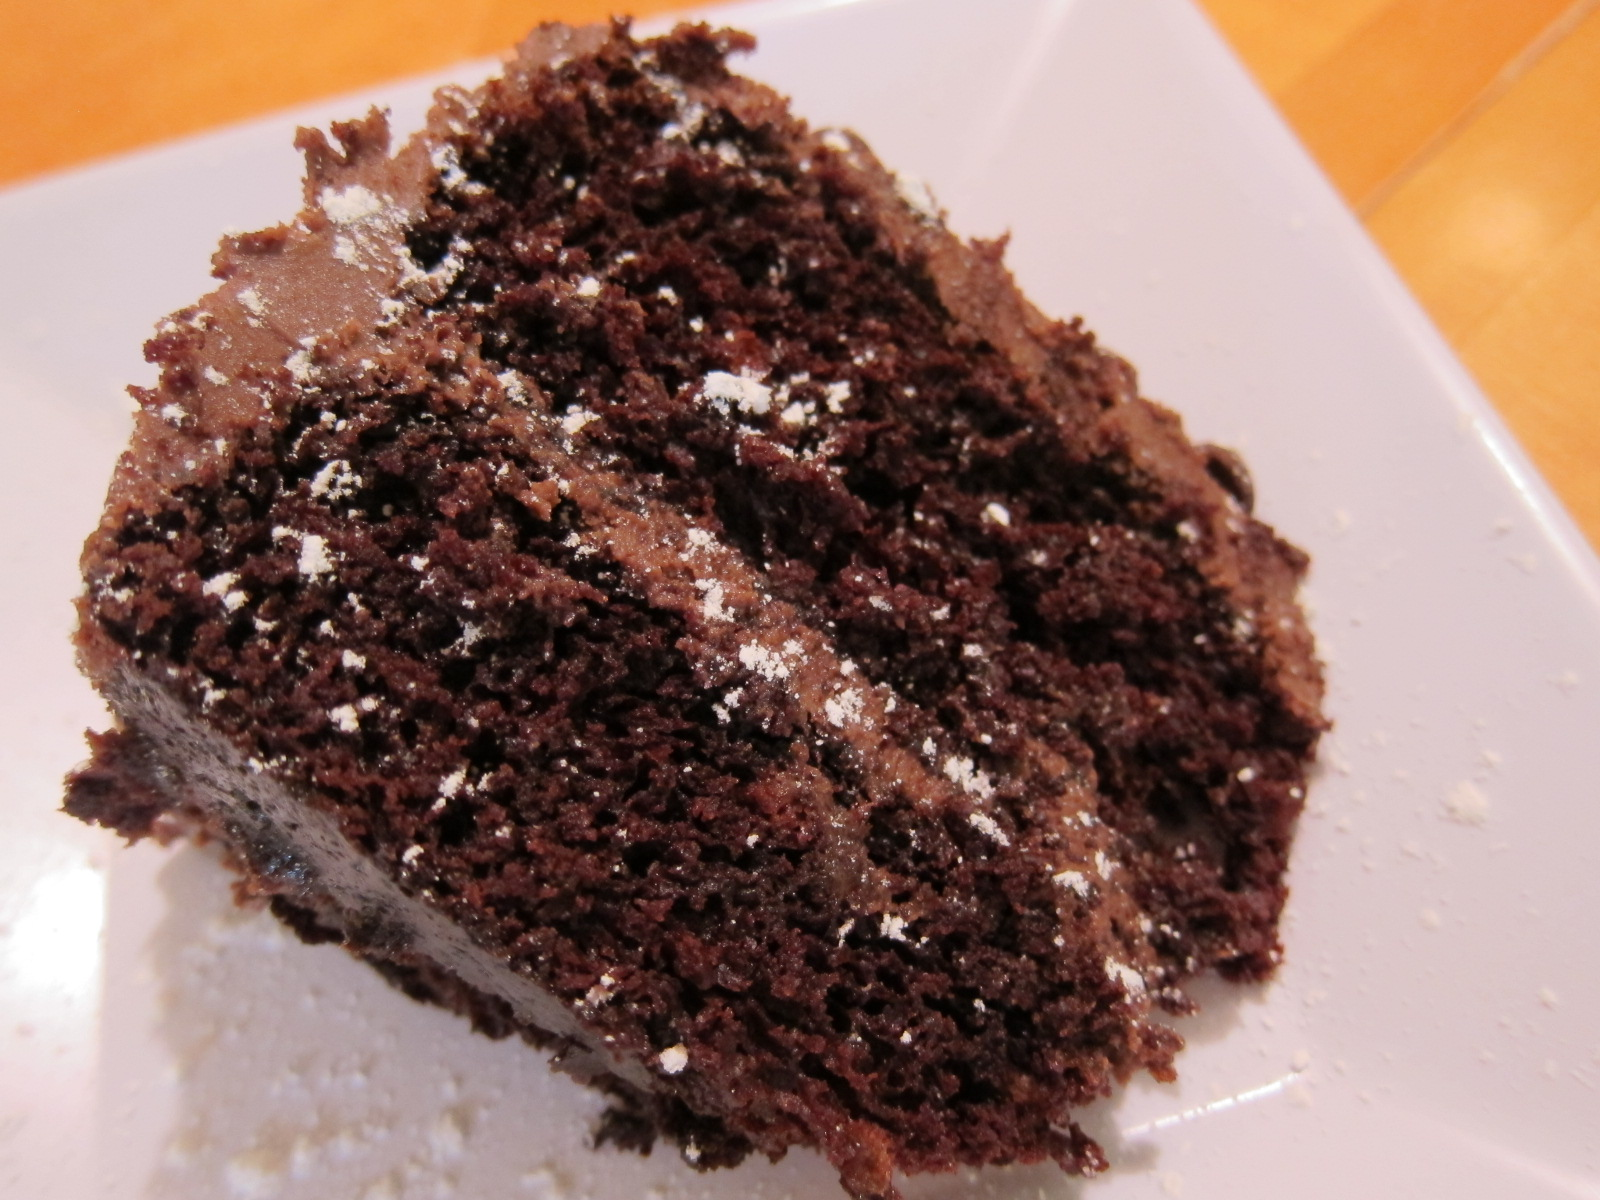 Pinch of This, That & the Other: Chocolate Cake w/ Chocolate Frosting